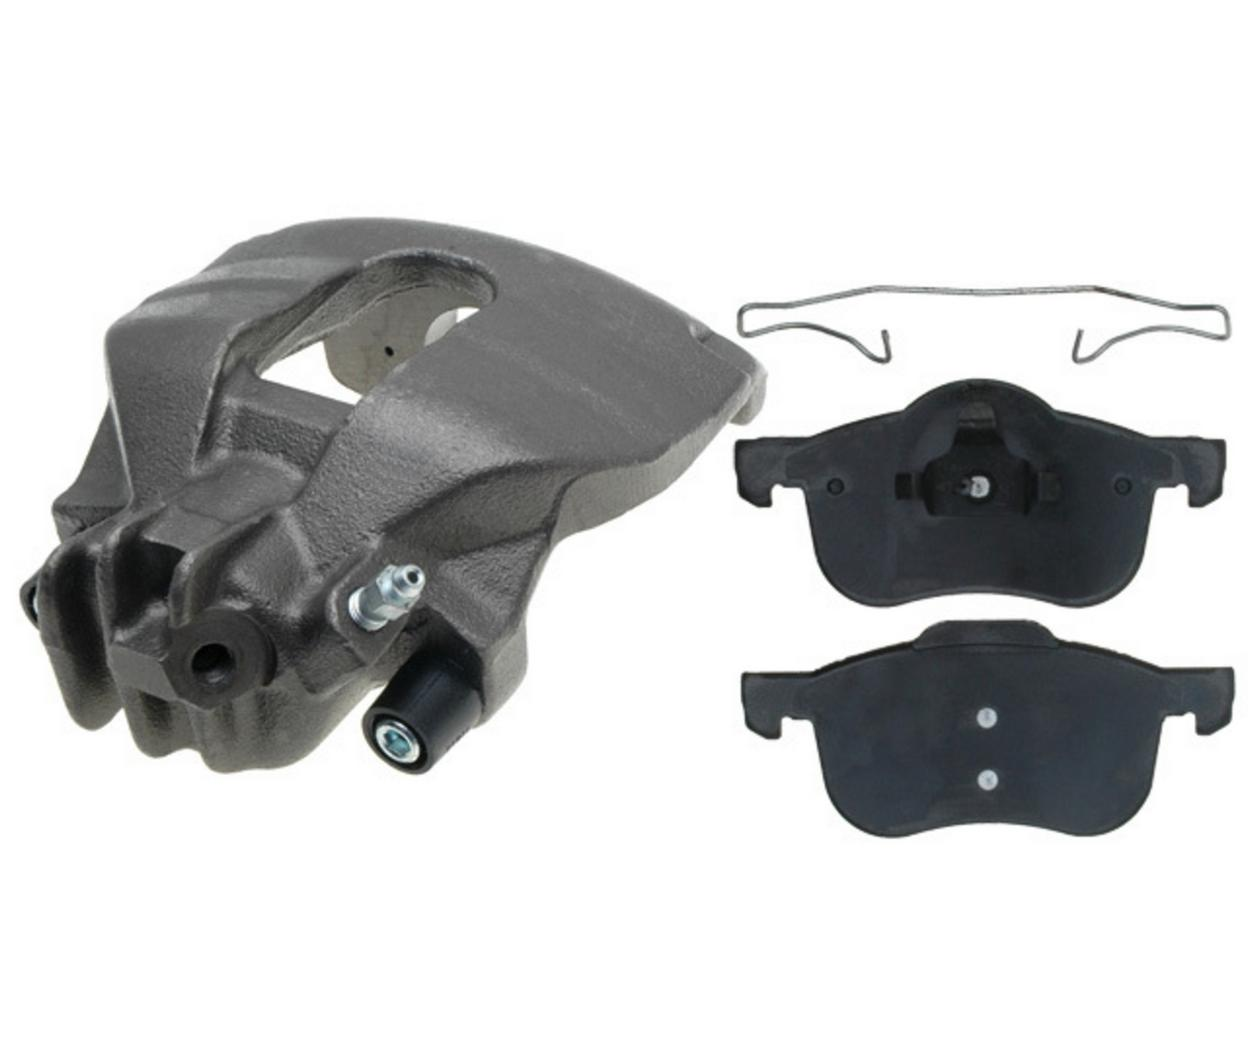 Raybestos Enhanced Hybrid Technology Reman Loaded Caliper & Bracket Assy